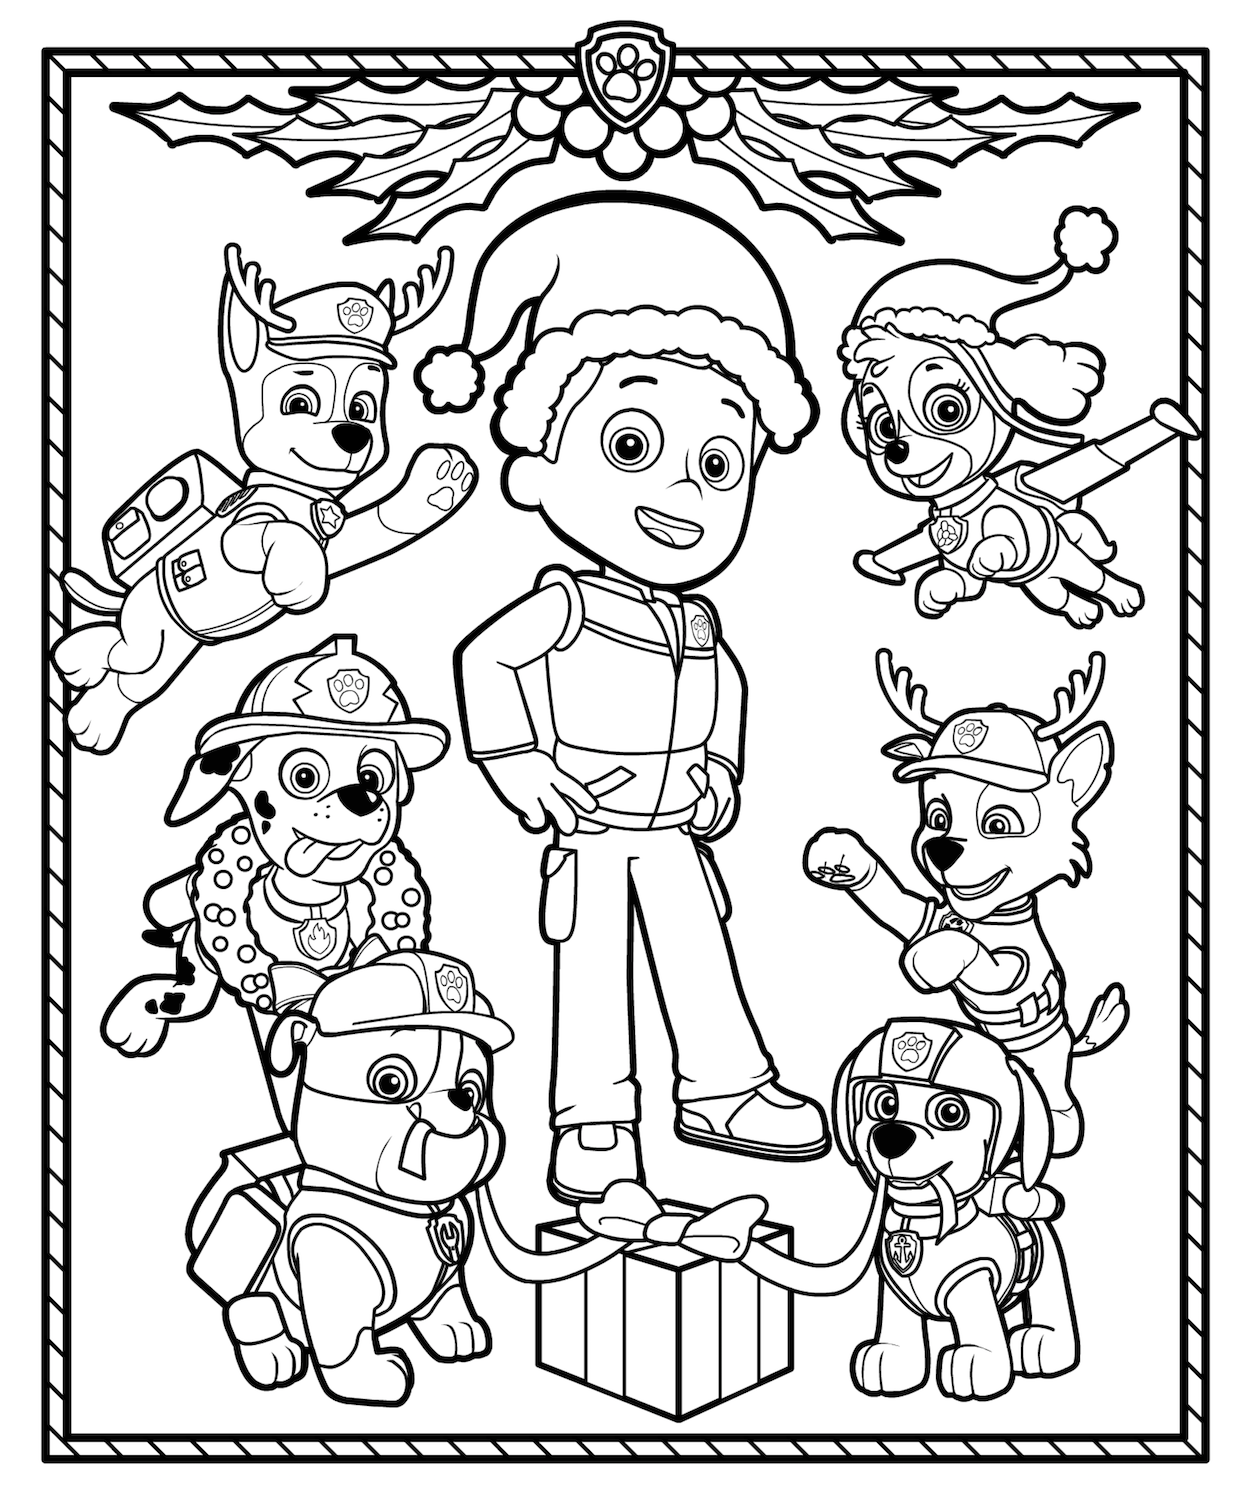 You Can Download The Tracker Christmas Coloring Page By Right Clicking Your Mouse And Saving It To Computer Have A Paw Some Holiday